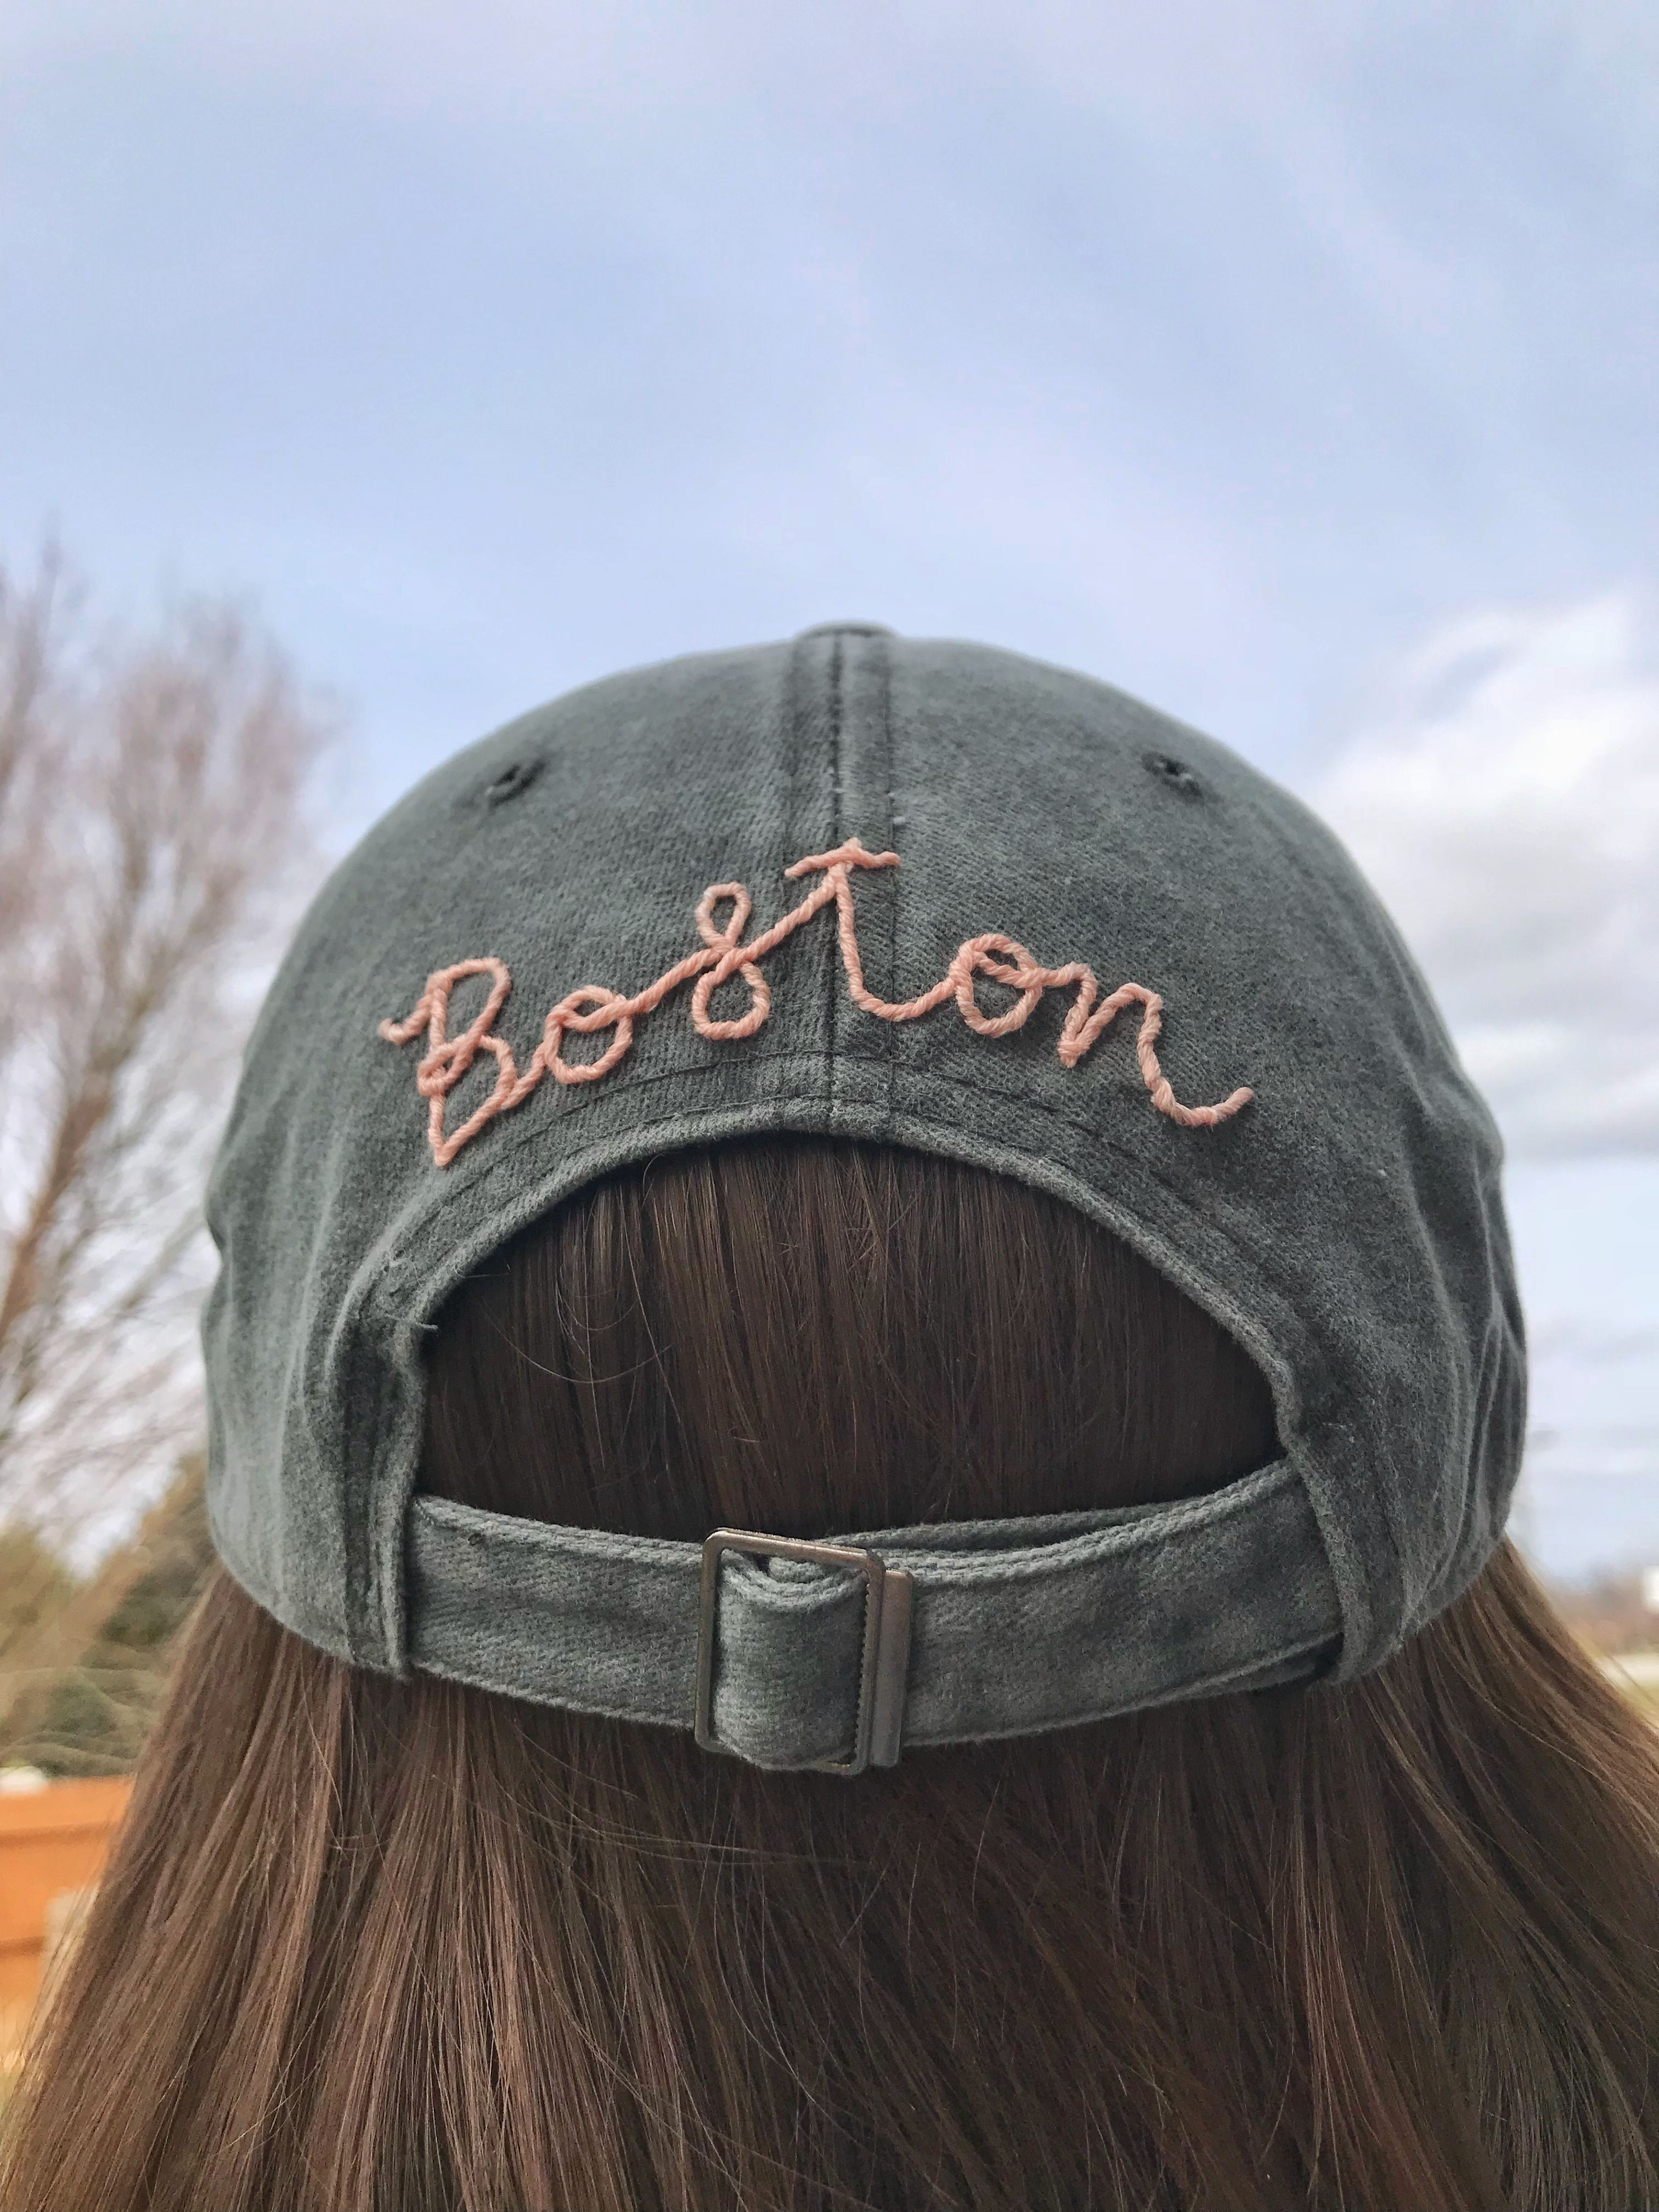 Custom Women S Baseball Cap Spring Fashion Massachusetts Modern Embroidery Embroidery Unique Items Products